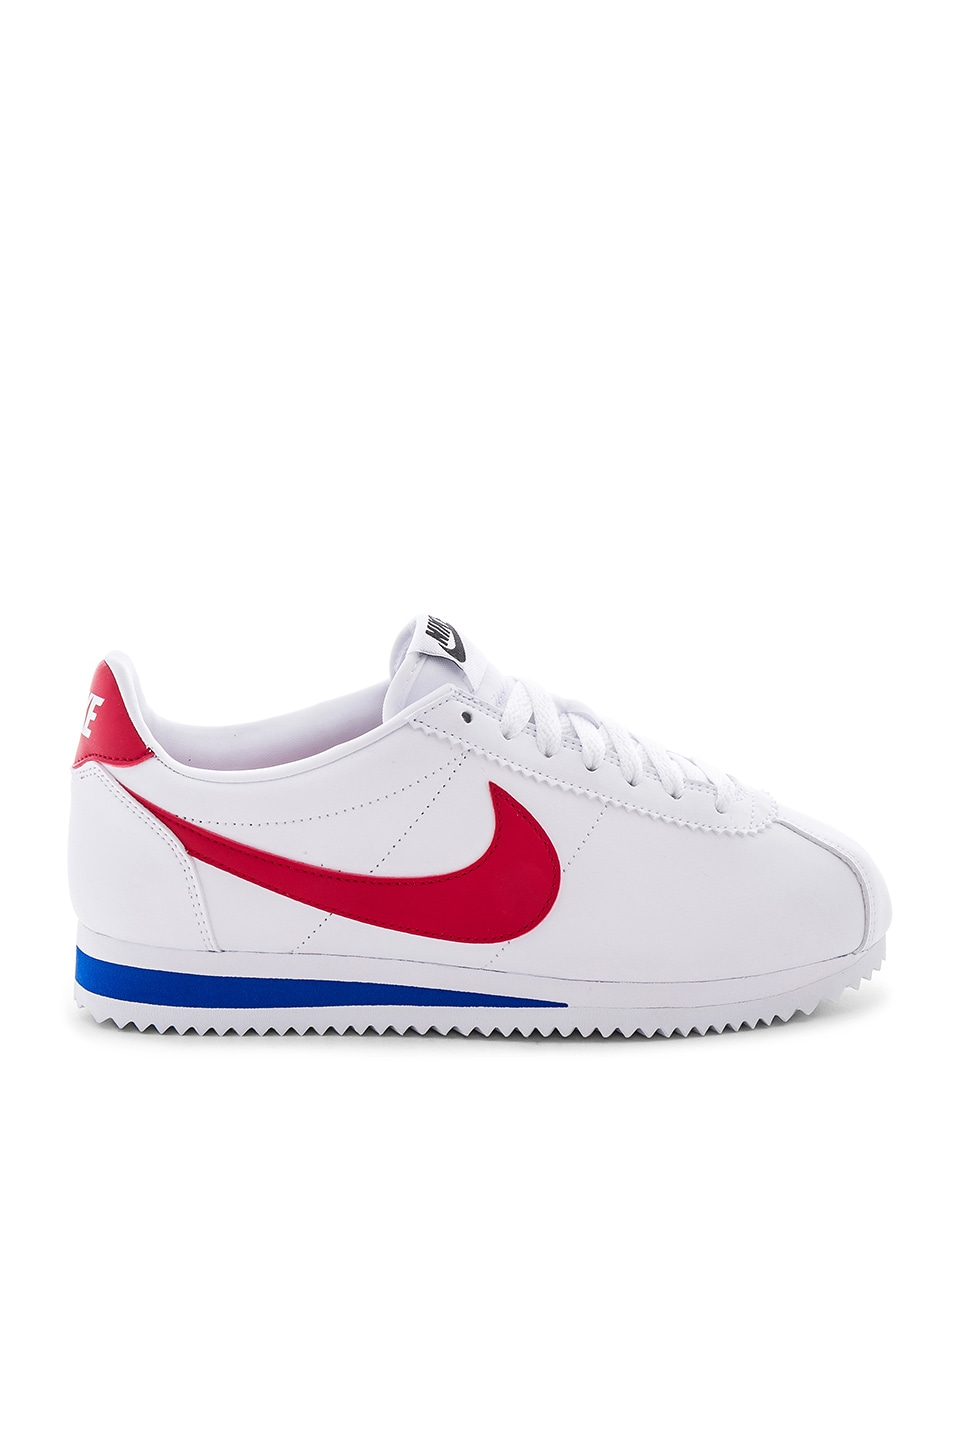 buy popular 87e51 2090f Nike Classic Cortez Leather Sneaker in White, Varsity Red ...